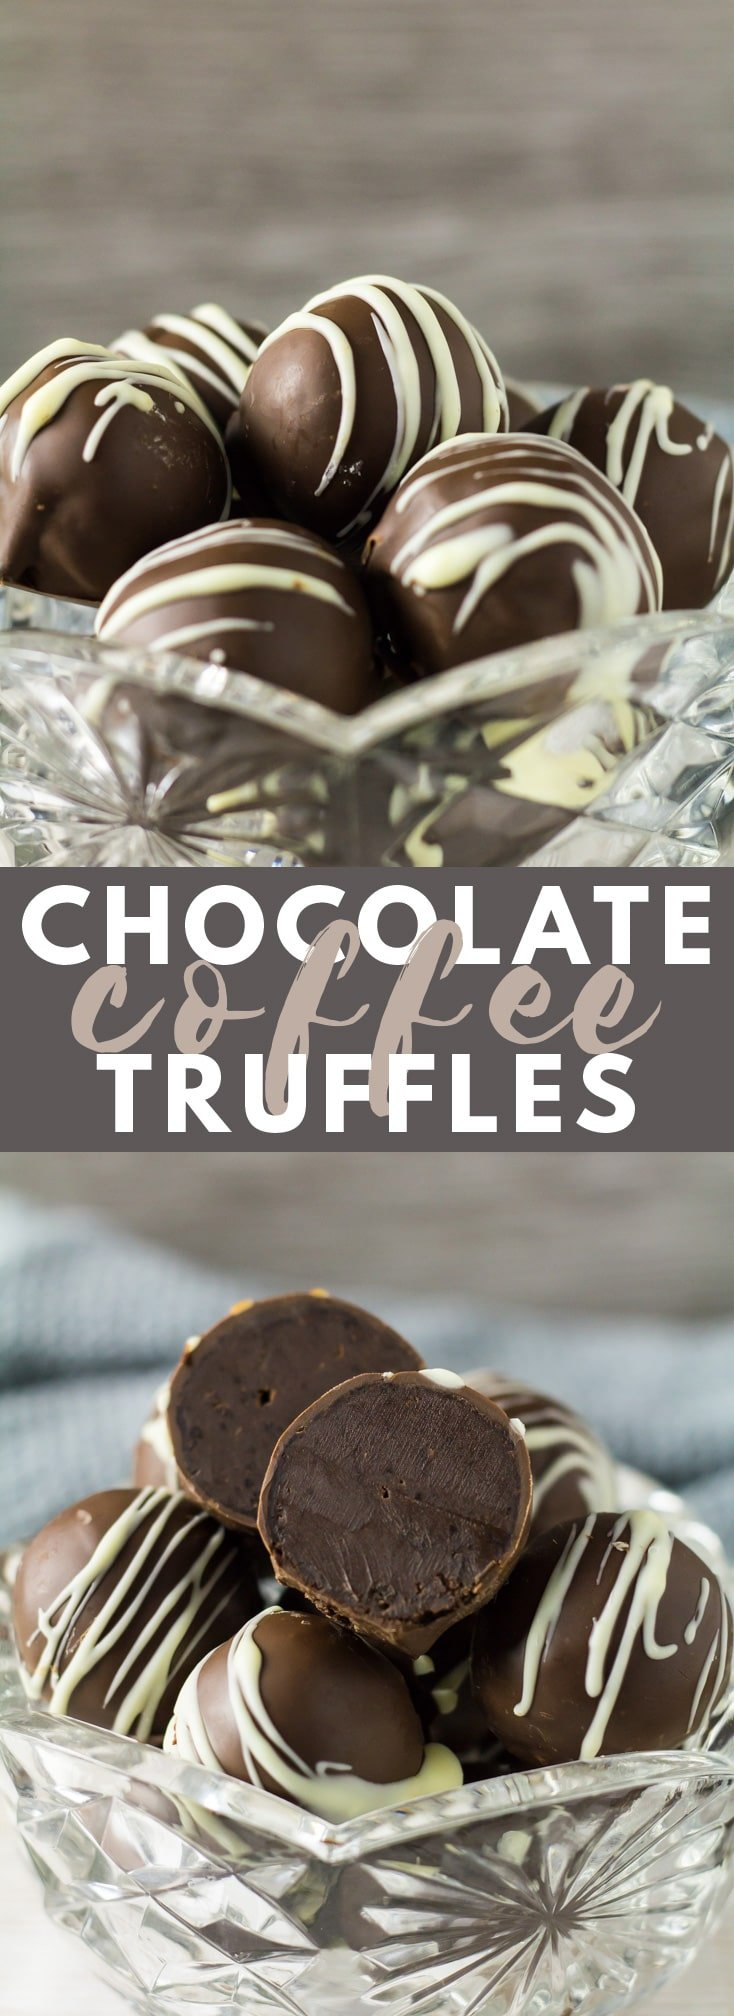 Chocolate Coffee Truffles - These deliciously rich and creamy chocolate truffles are infused with coffee, and sealed in a smooth chocolate shell!